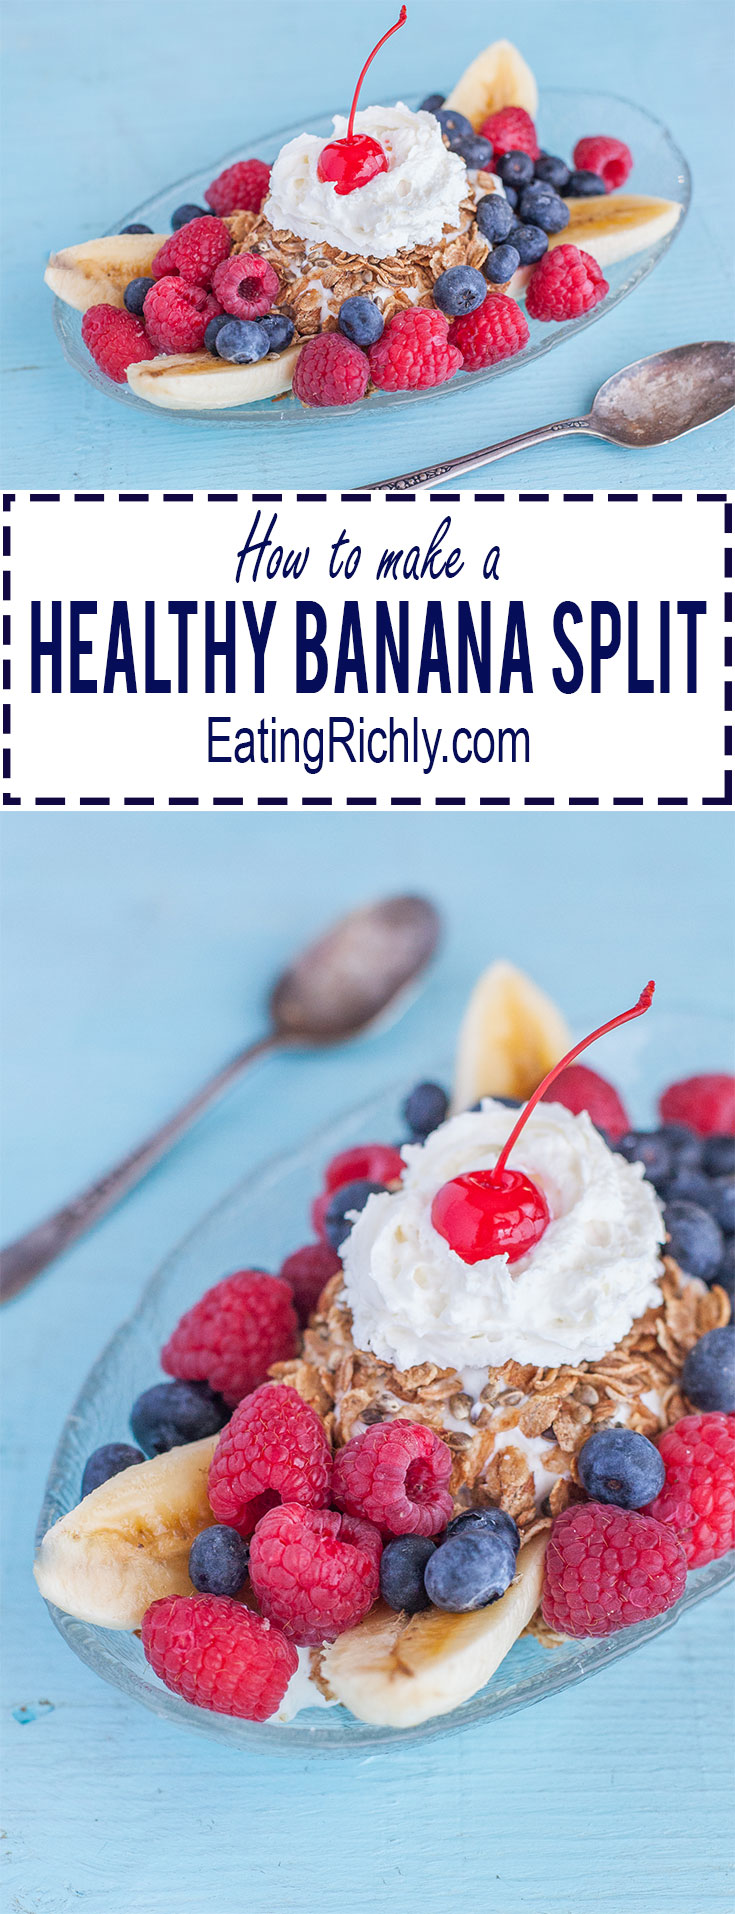 This delicious but Healthy Banana Split Recipe is magic for your tastebuds and waistline, and perfect for making with your kids.  From EatingRichly.com